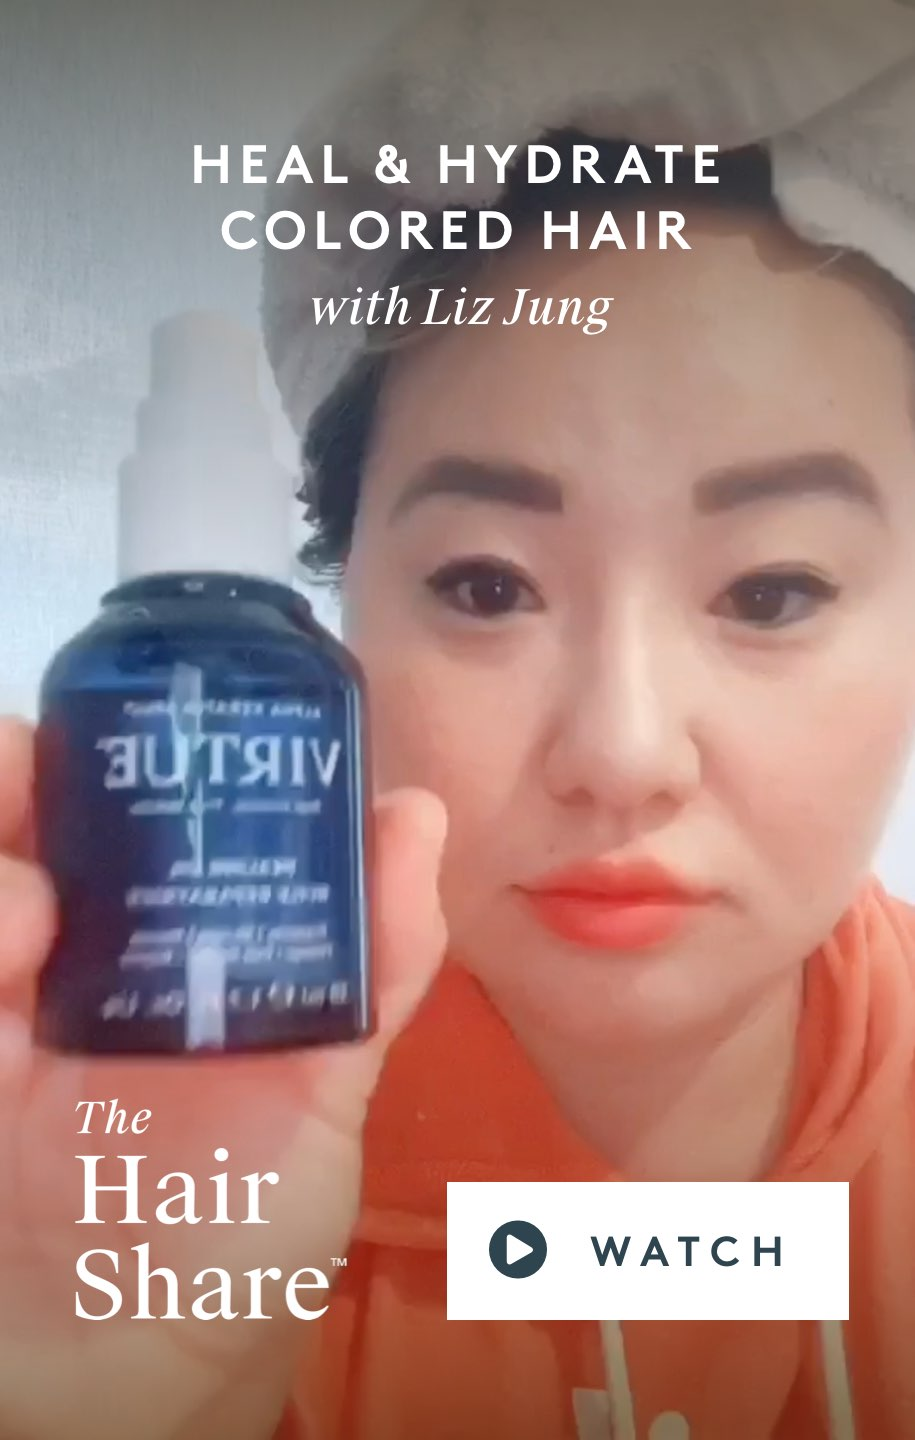 Heal & Hydrate Colored Hair with Liz Jung